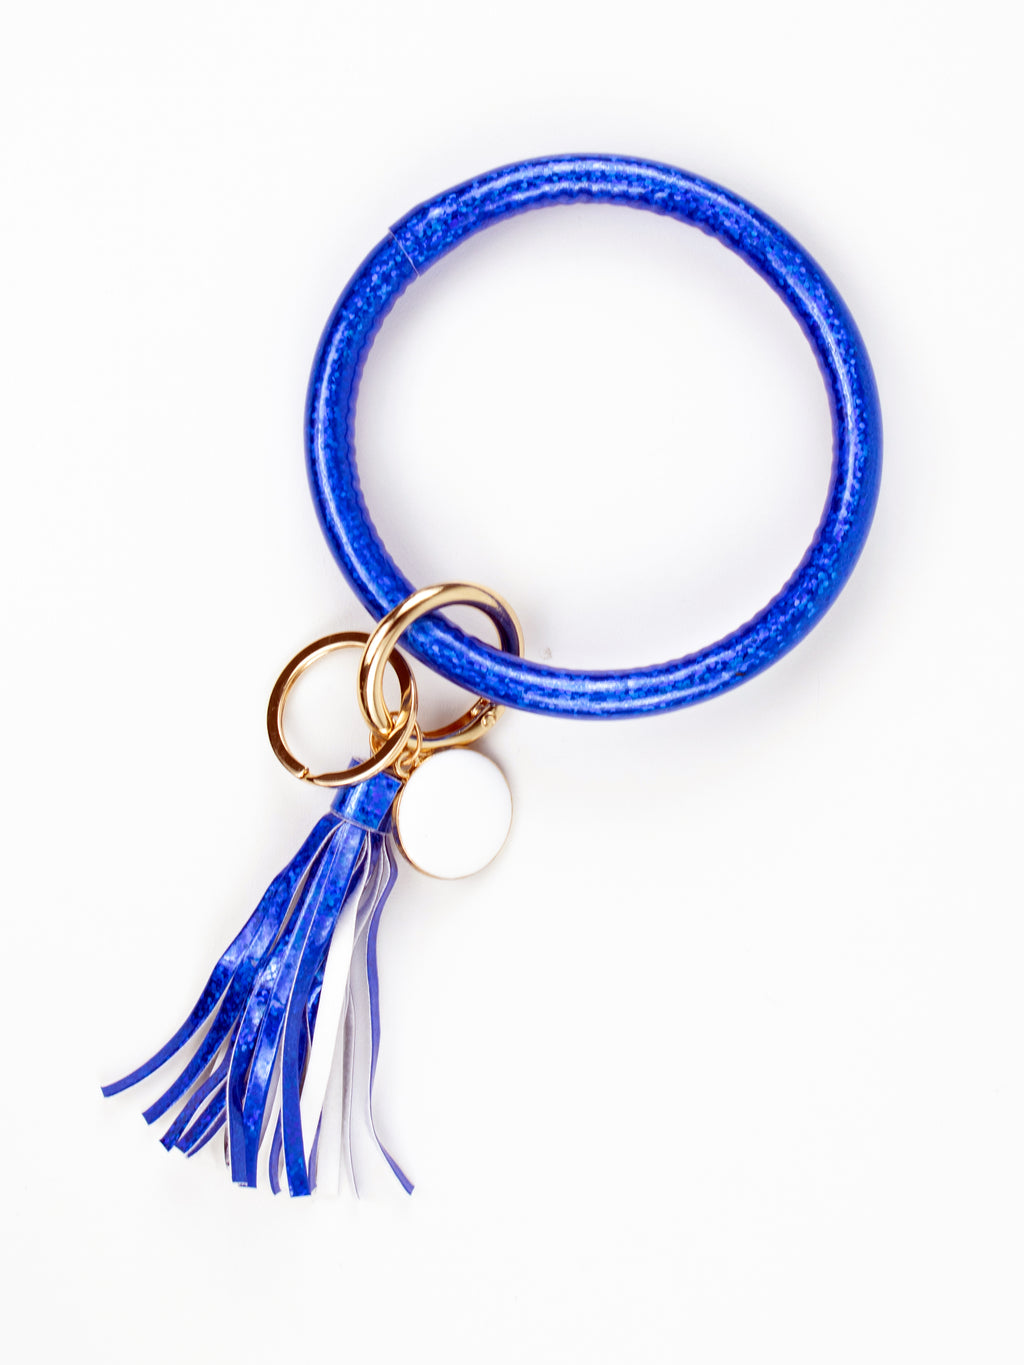 Bangle Bracelet Key Ring - Royal Blue Glitter